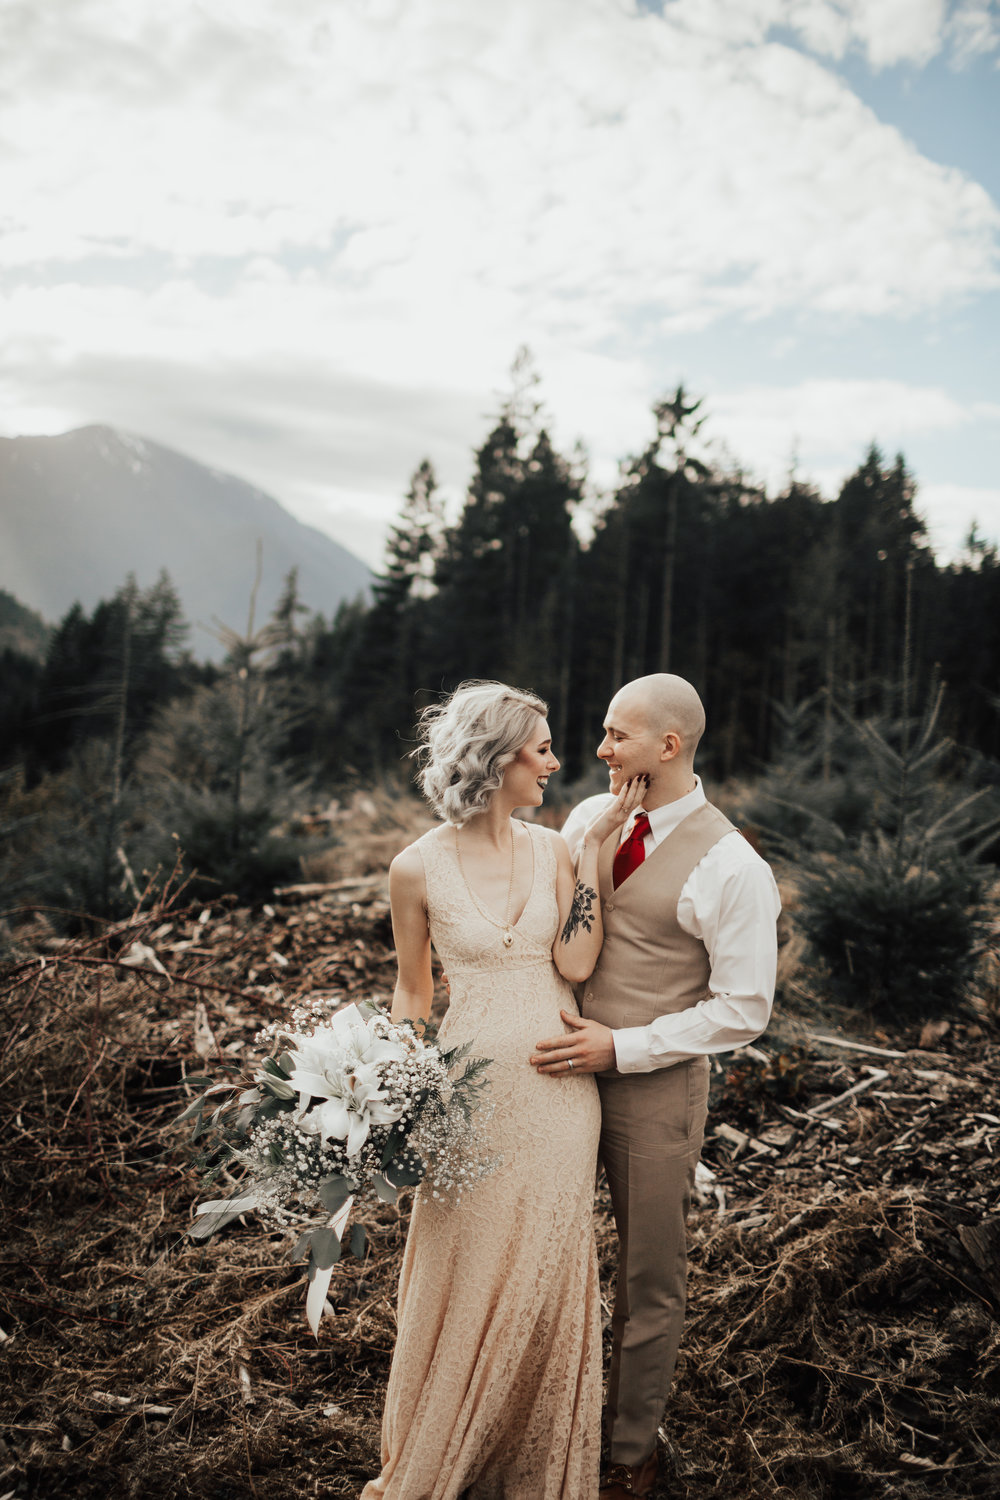 Port Angeles-PNW-Sequim-Portrait-wedding-elopement-photographer-kayladawnphoto-kayla dawn photography-olympic peninsula-portraiture1.jpg